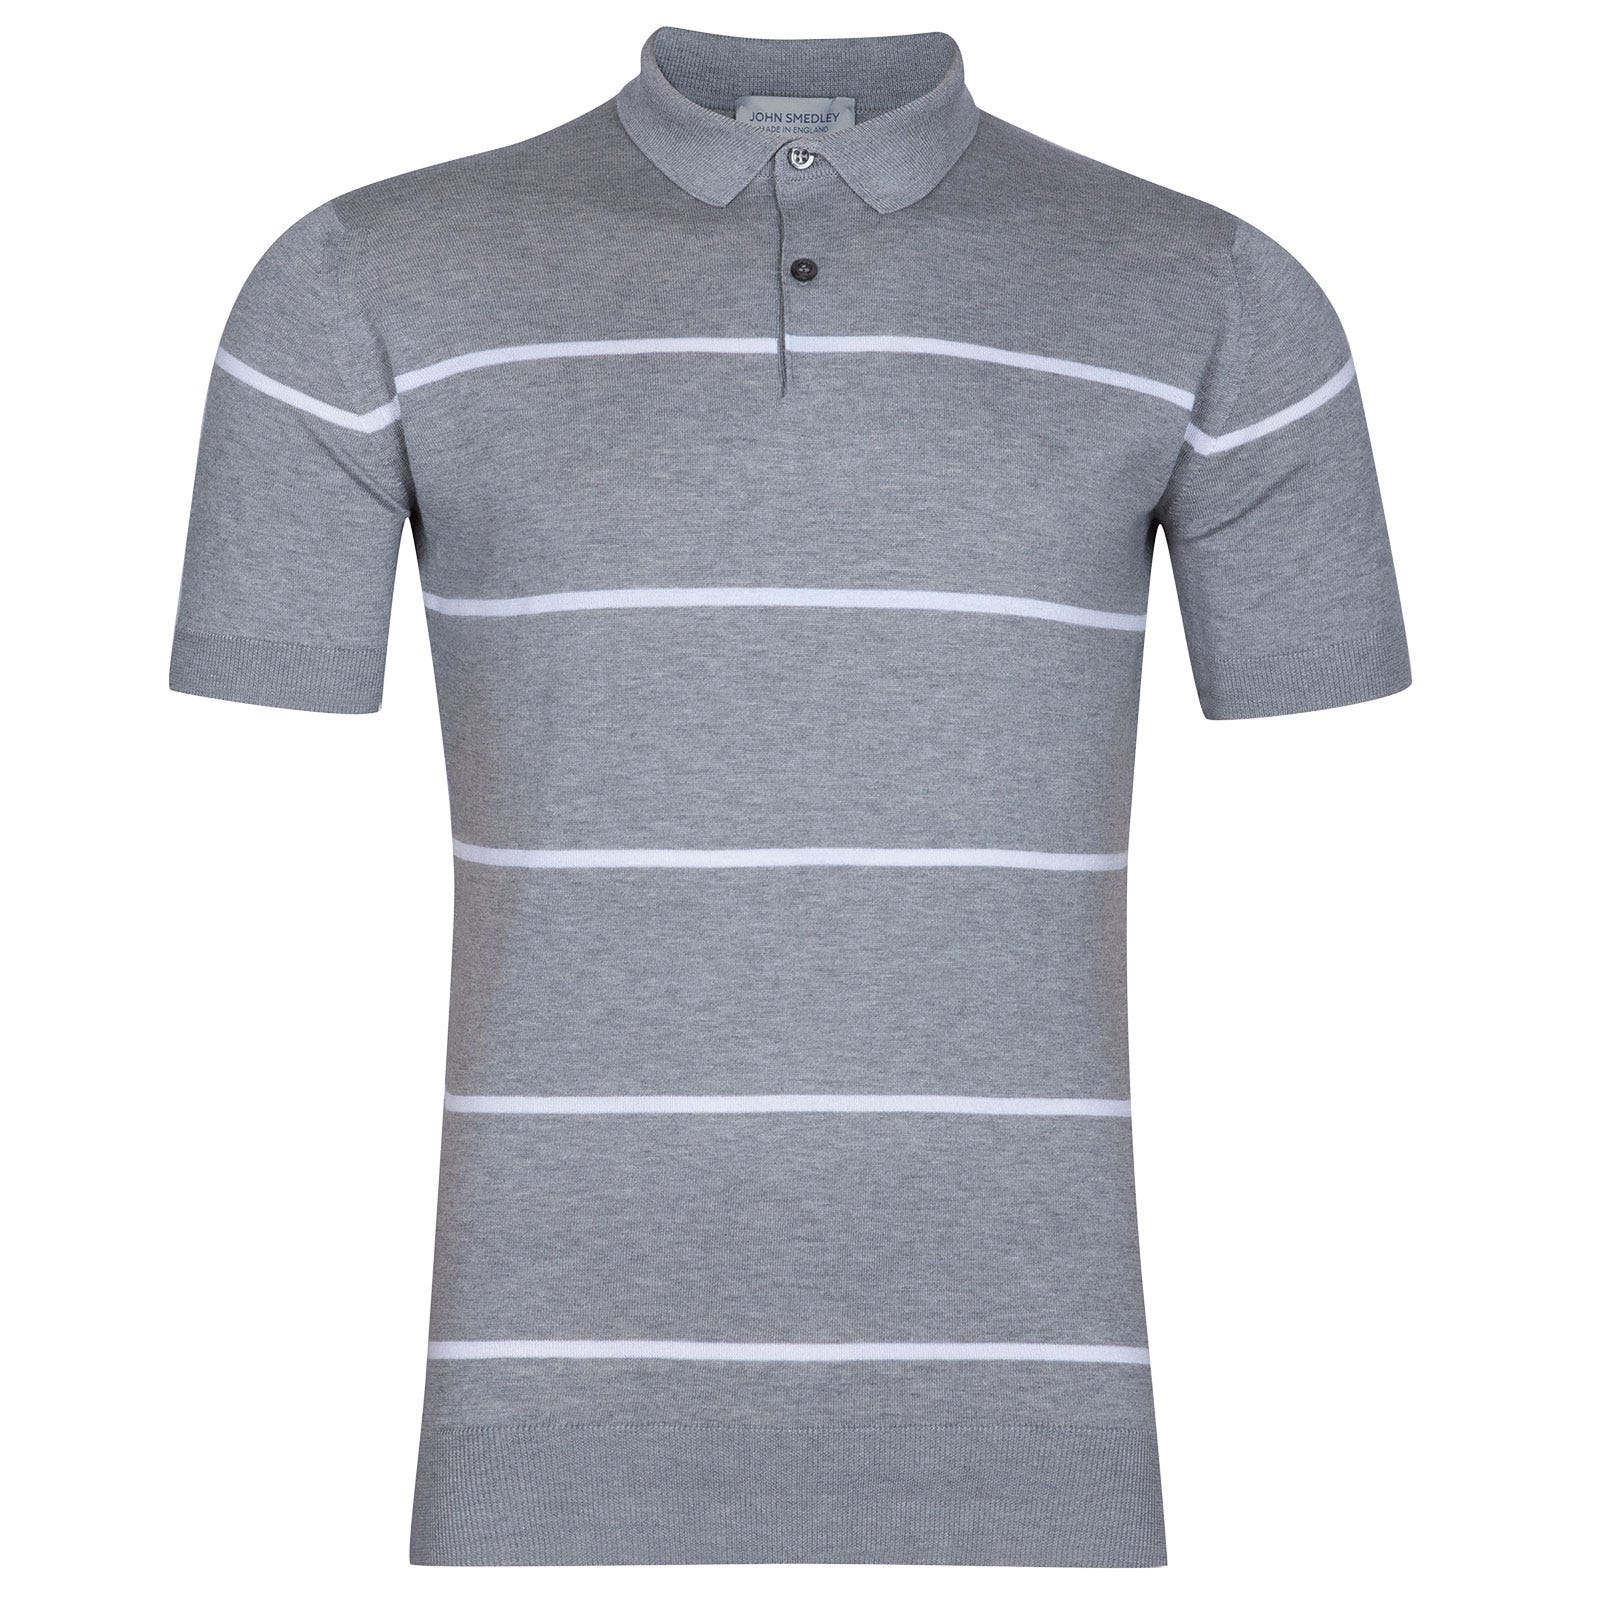 John Smedley Hembury Sea Island Cotton Shirt in Silver-XL